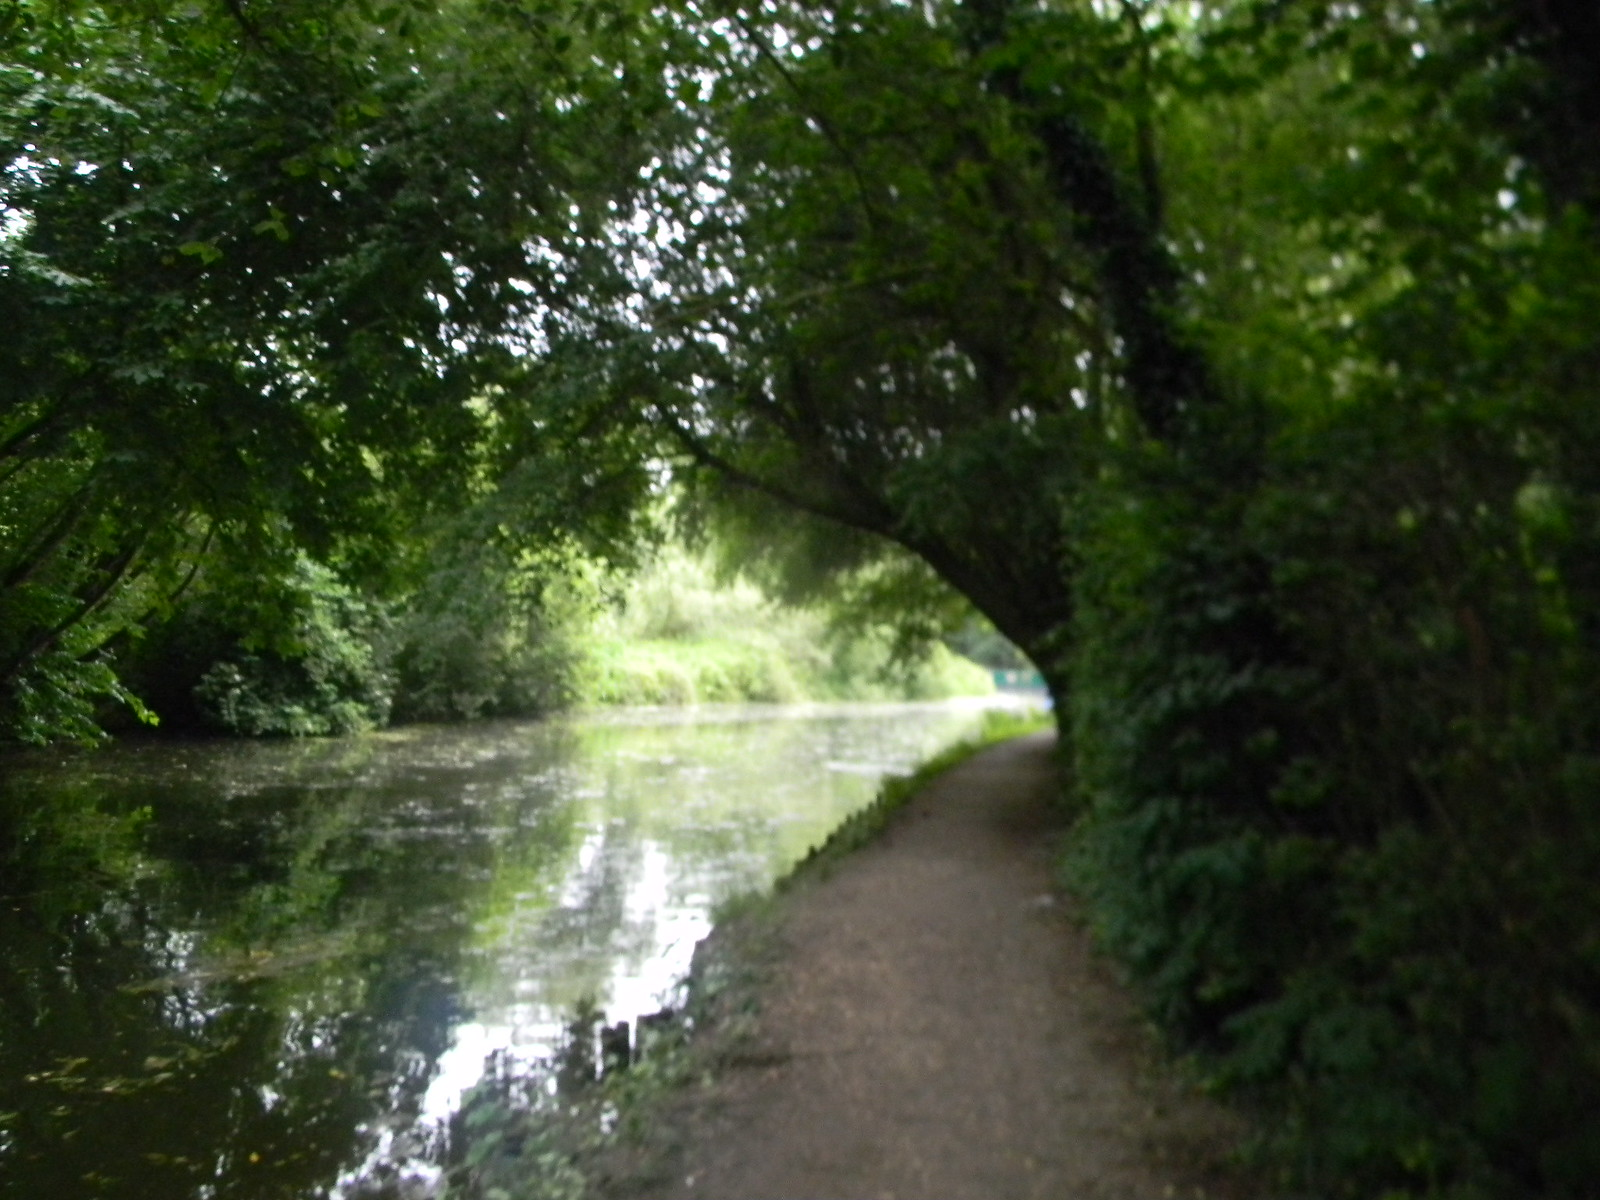 The Stort Sawbridgeworth to Bishops Stortford